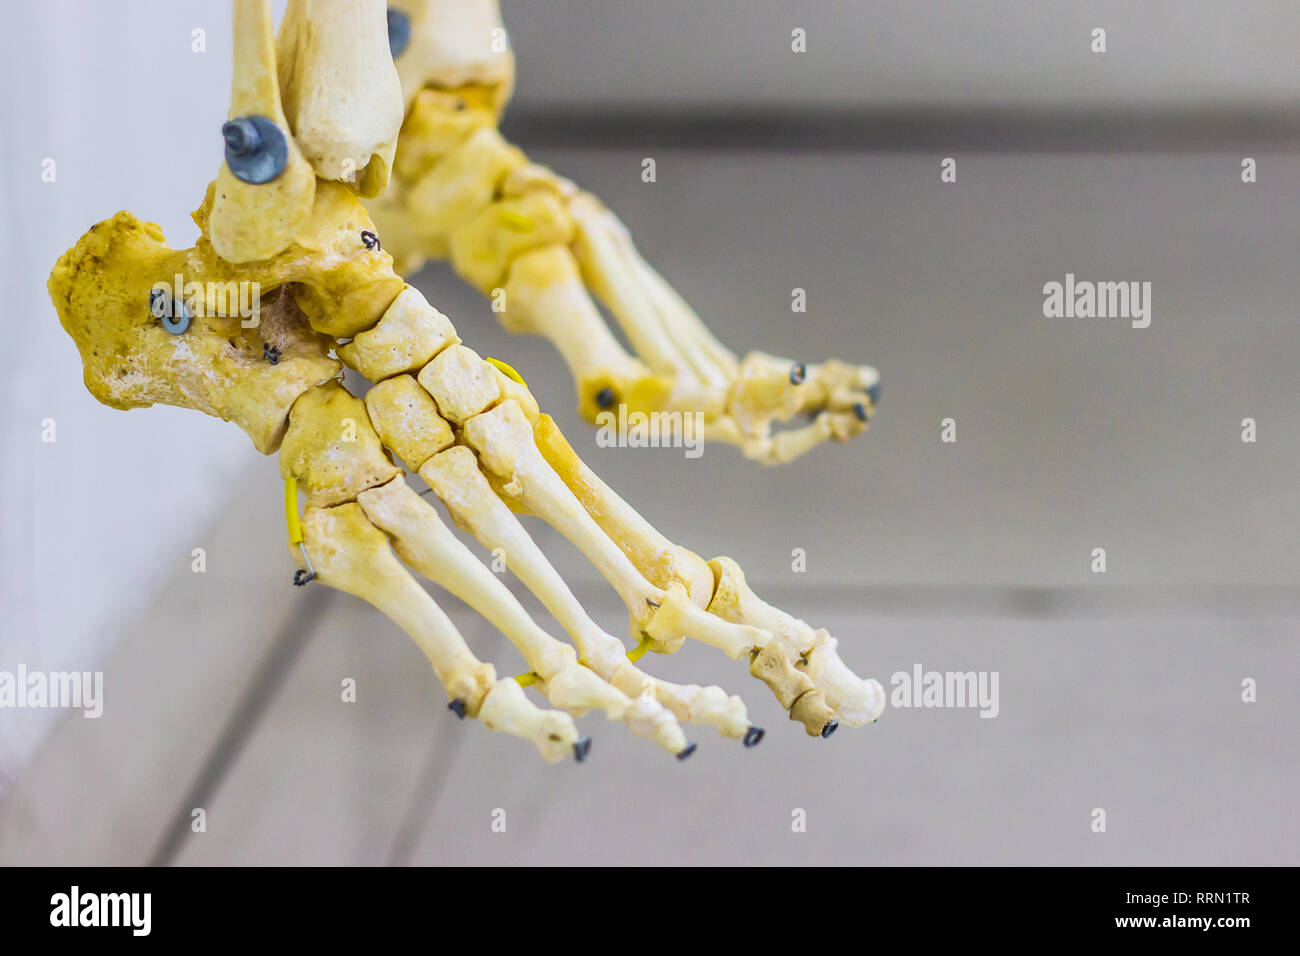 articulated tarsal metatarsal and phalanges bones showing human foot anatomy in white background - Stock Image